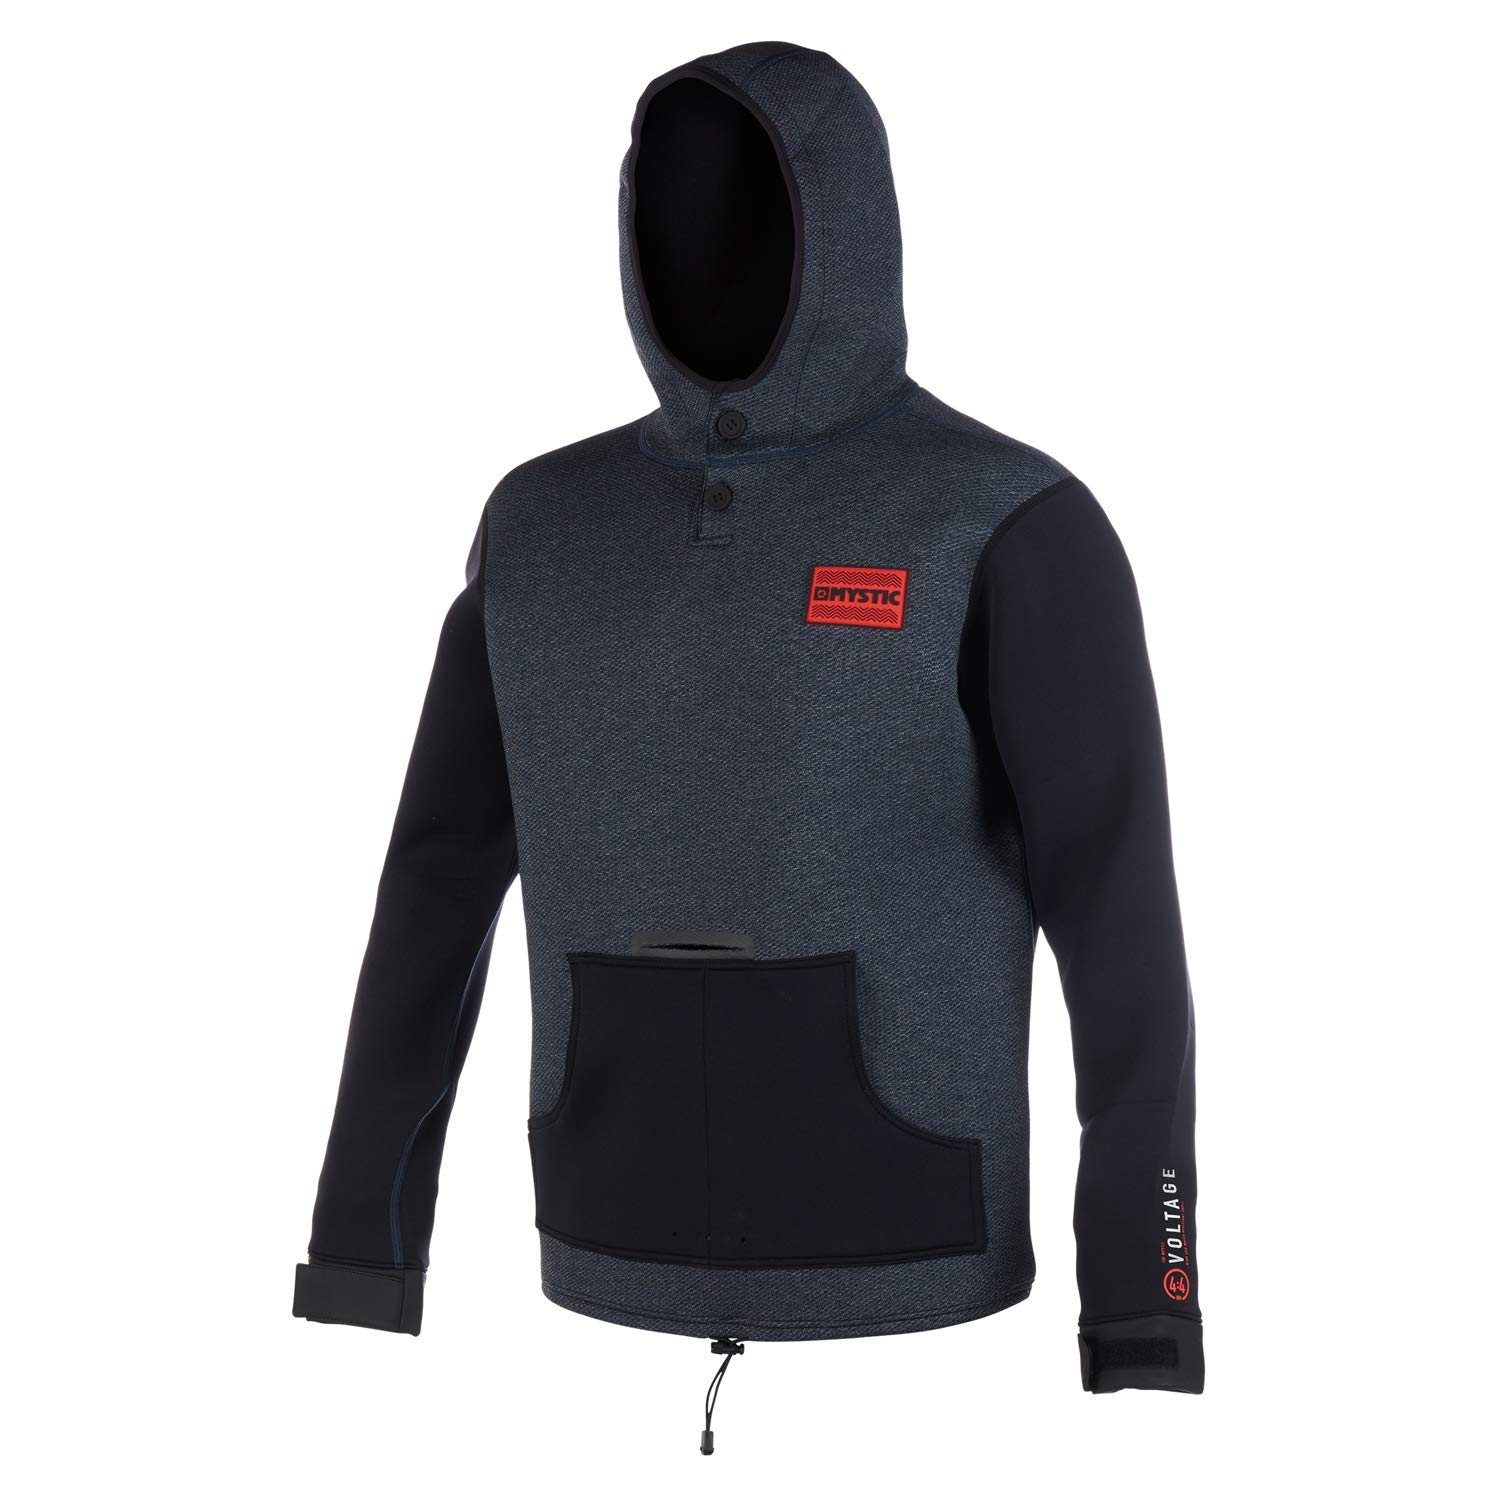 Mystic Watersports - Surf Kitesurfen & Windsurfen Voltage Sweat Neoprenanzug Hoodie Hoodie Jumper Navy rot B07MJW7RC7 Herren Starke Hitze- und HitzeBesteändigkeit